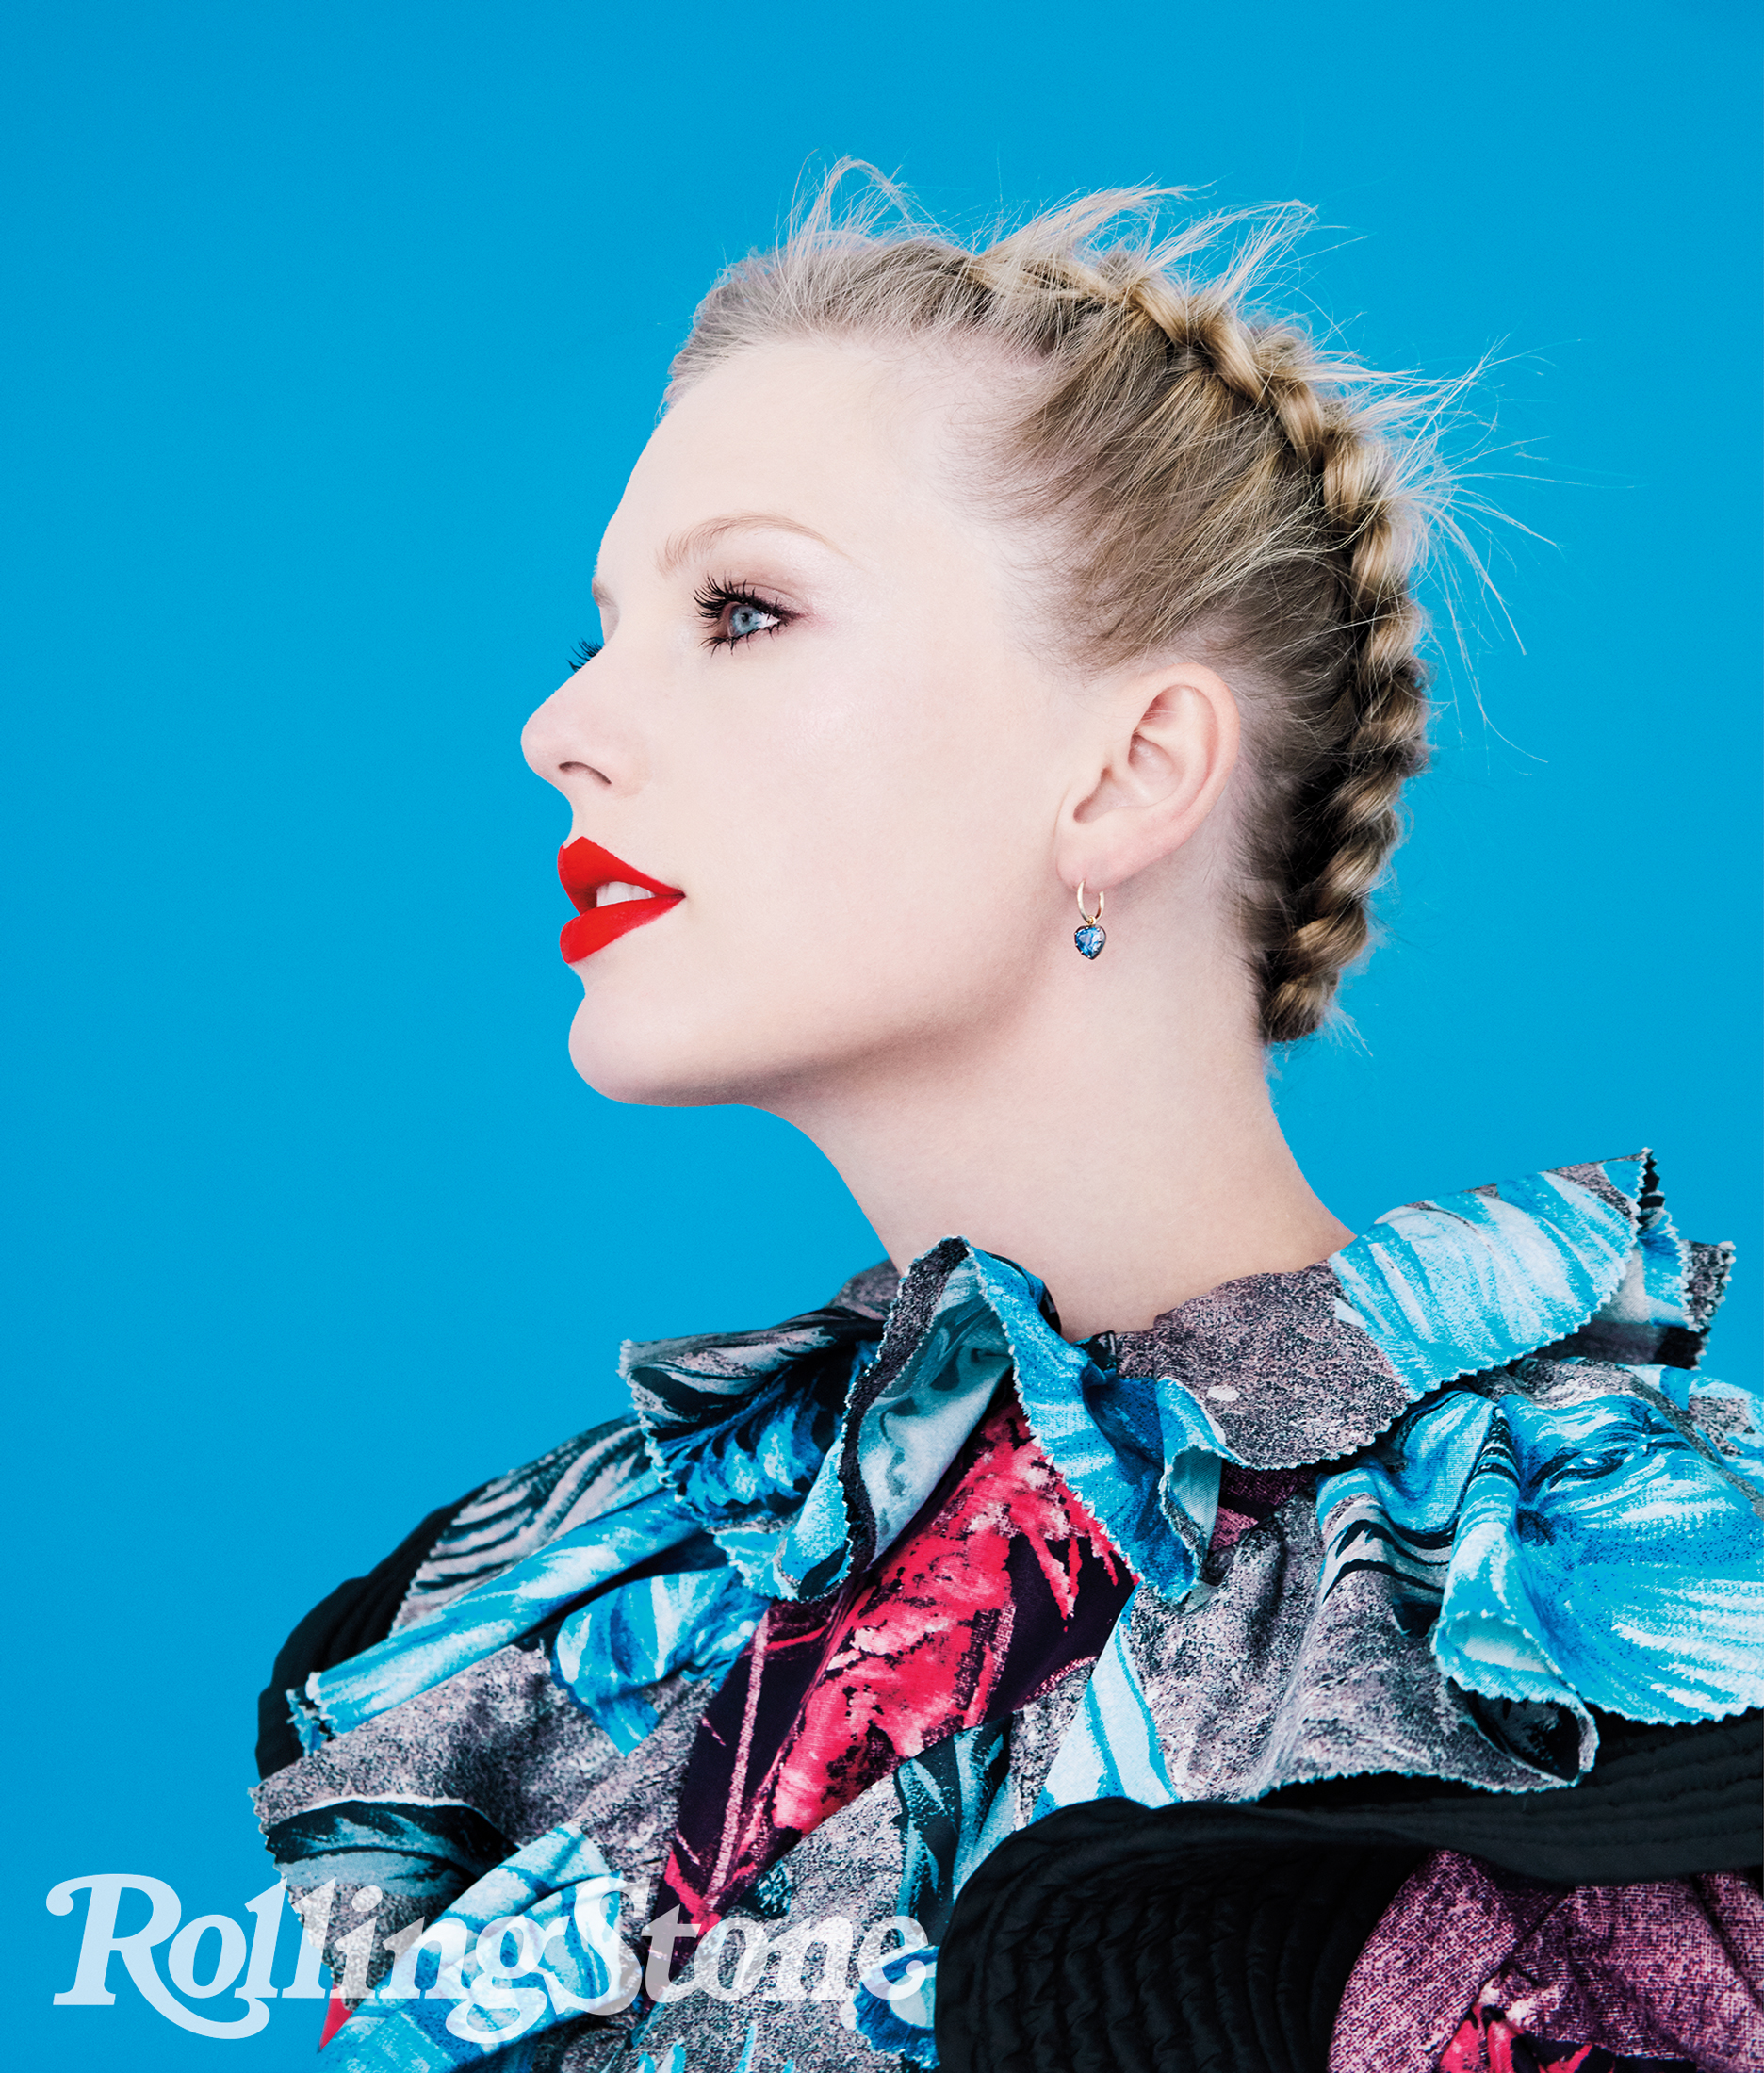 RS1332Taylor SwiftPhotograph by by Erik Madigan Heck for Rolling Stone